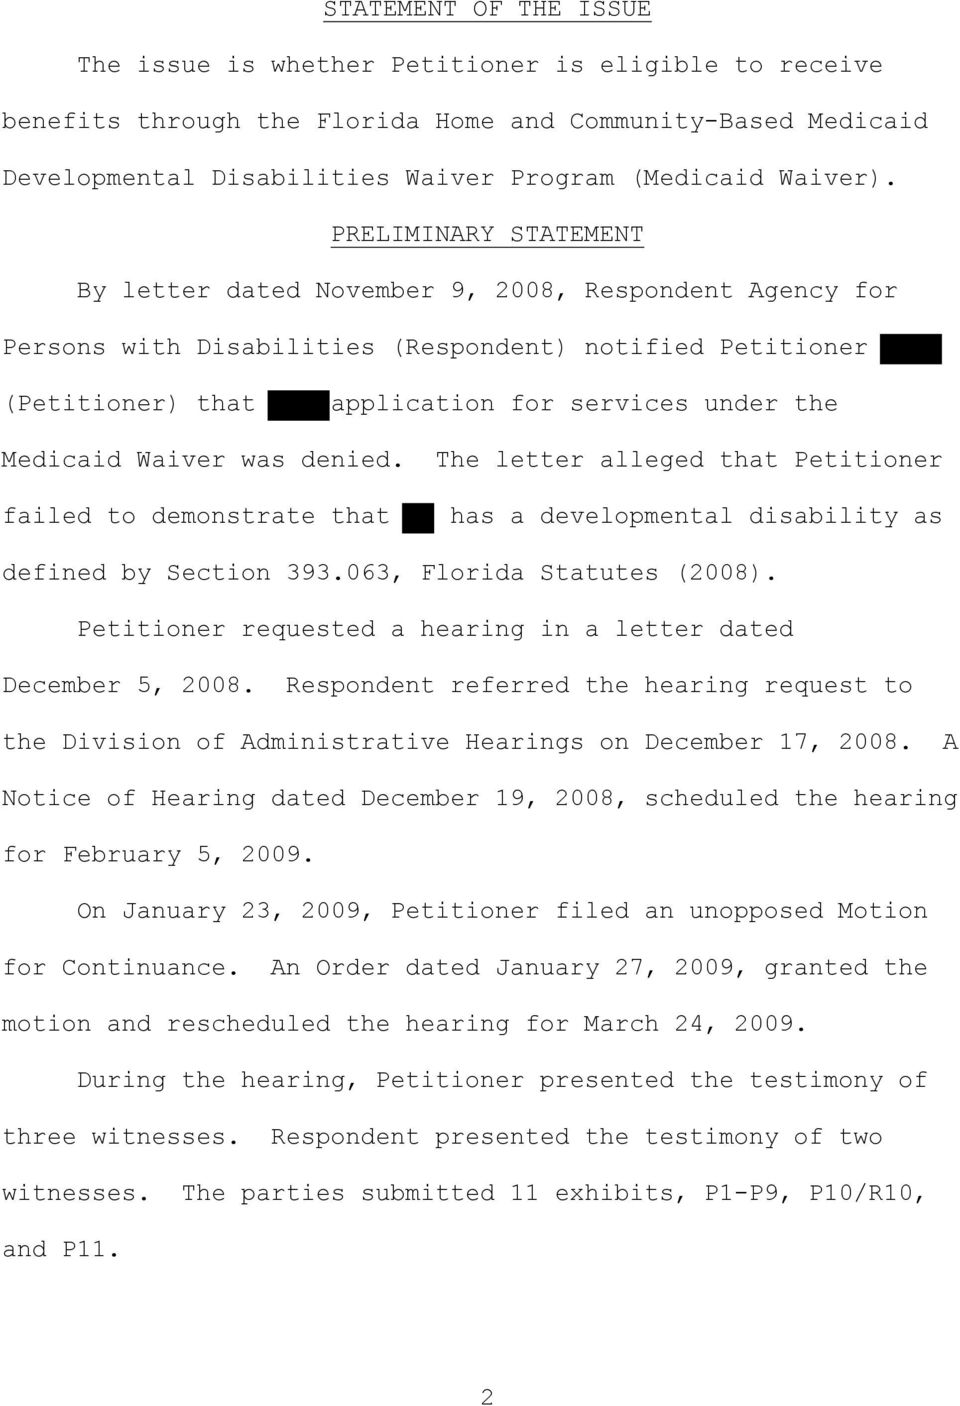 Waiver was denied. The letter alleged that Petitioner failed to demonstrate that has a developmental disability as defined by Section 393.063, Florida Statutes (2008.